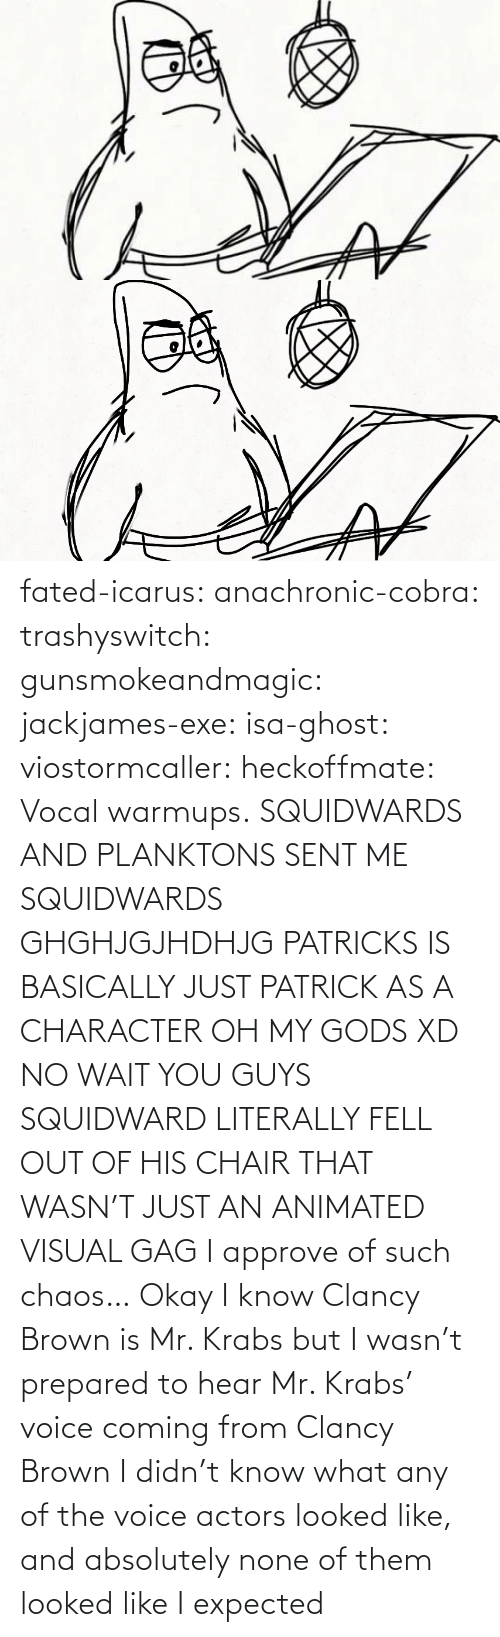 patrick: fated-icarus:  anachronic-cobra: trashyswitch:  gunsmokeandmagic:  jackjames-exe:  isa-ghost:   viostormcaller:  heckoffmate: Vocal warmups. SQUIDWARDS AND PLANKTONS SENT ME  SQUIDWARDS GHGHJGJHDHJG   PATRICKS IS BASICALLY JUST PATRICK AS A CHARACTER OH MY GODS XD   NO WAIT YOU GUYS SQUIDWARD LITERALLY FELL OUT OF HIS CHAIR THAT WASN'T JUST AN ANIMATED VISUAL GAG    I approve of such chaos…    Okay I know Clancy Brown is Mr. Krabs but I wasn't prepared to hear Mr. Krabs' voice coming from Clancy Brown    I didn't know what any of the voice actors looked like, and absolutely none of them looked like I expected